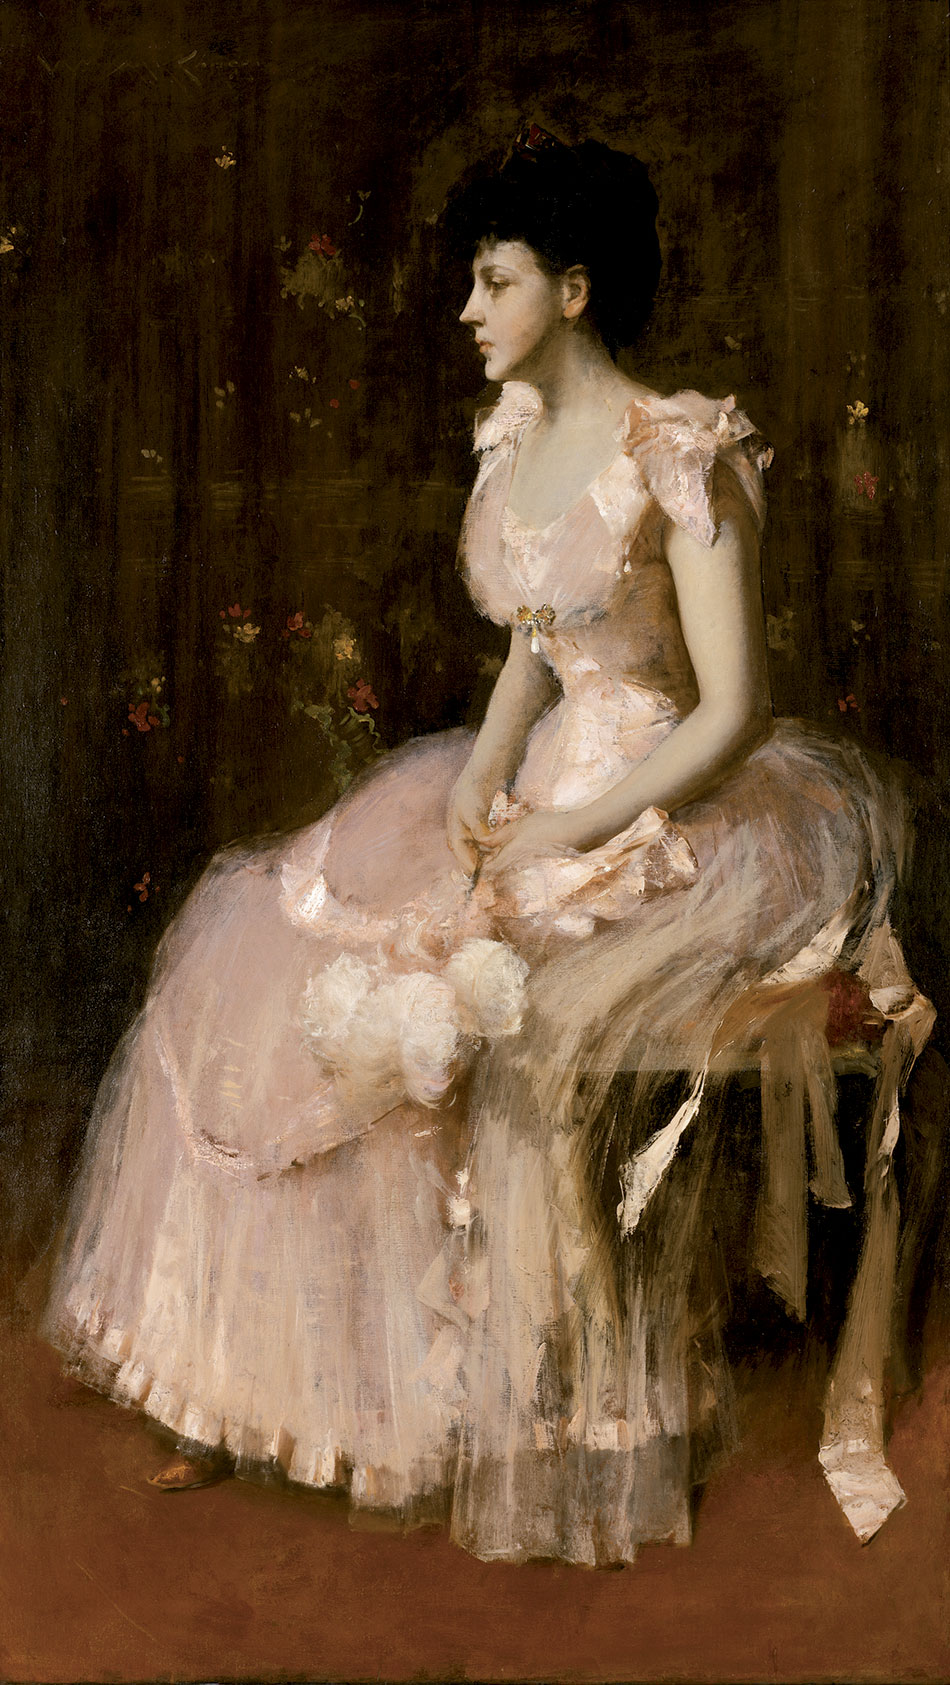 william-merritt-chase_portrait-of-a-woman-in-pink